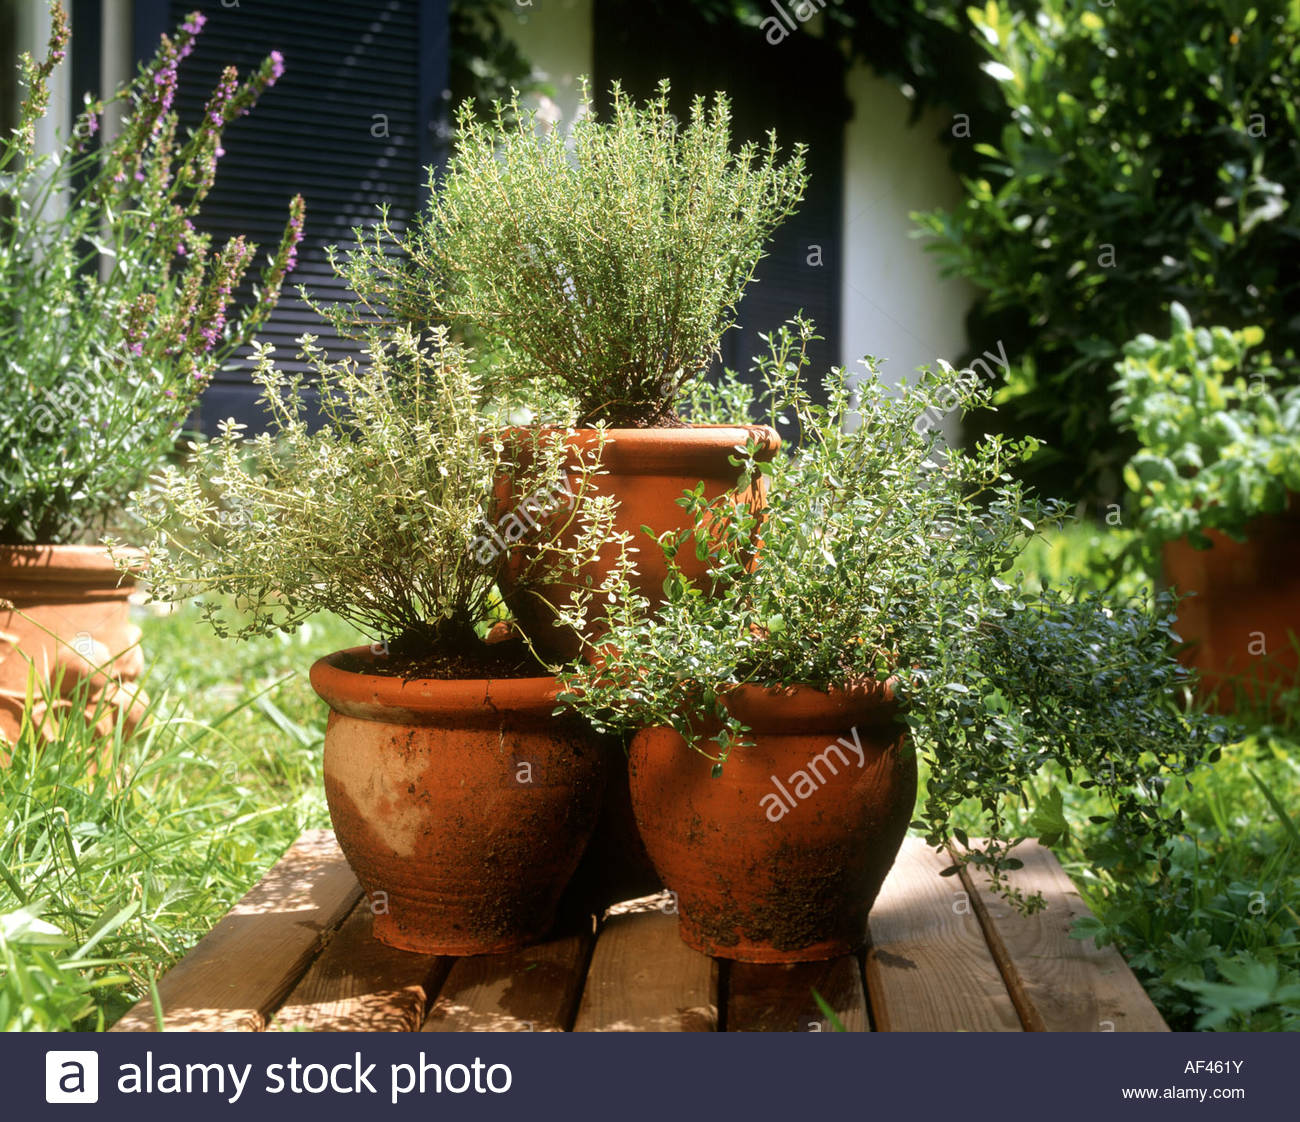 Outside Kitchen Designs Pictures Fresh Herbs In Large Terracotta Pots In Garden Stock Photo